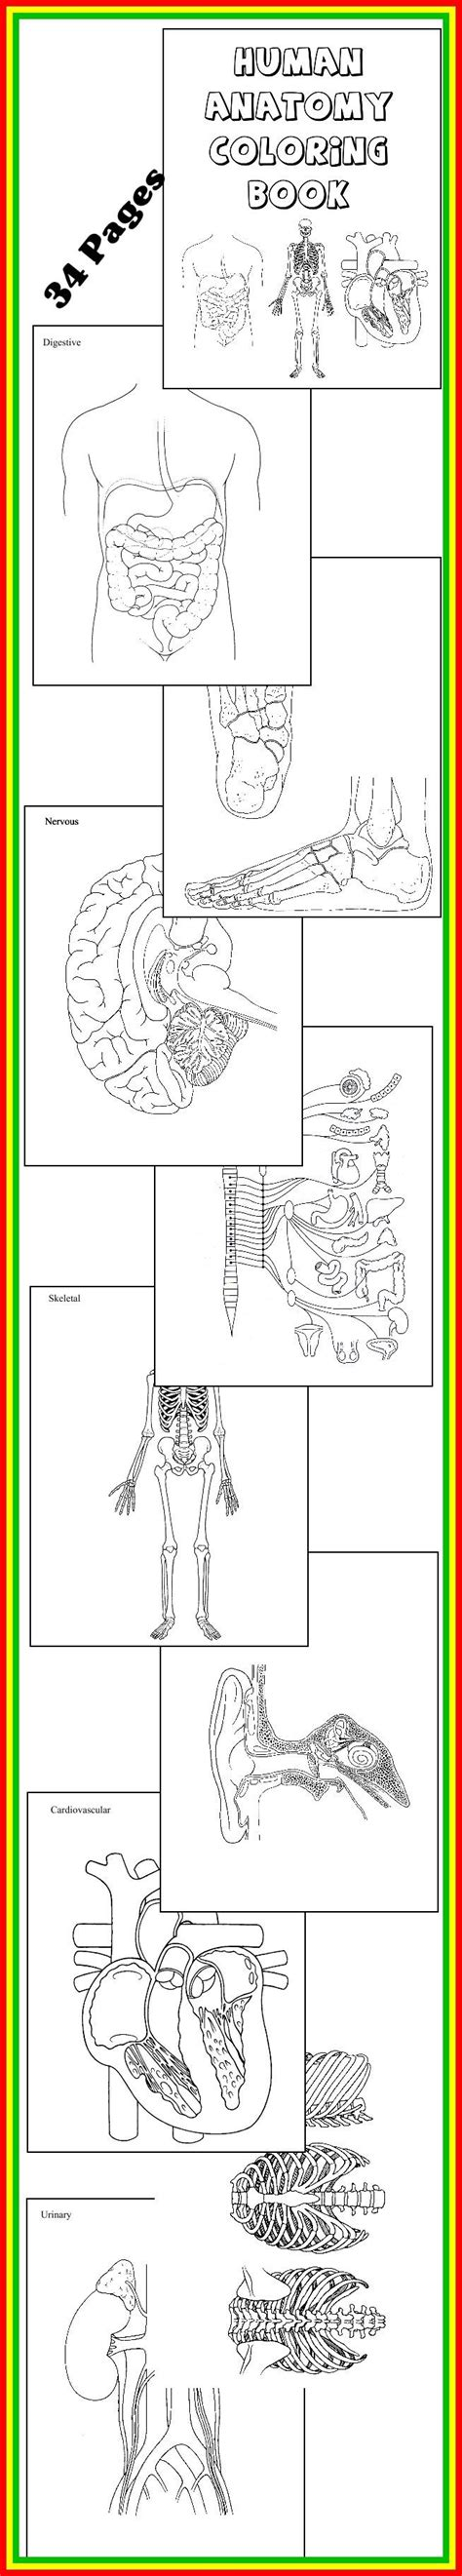 Human Anatomy Coloring Book Download Loading